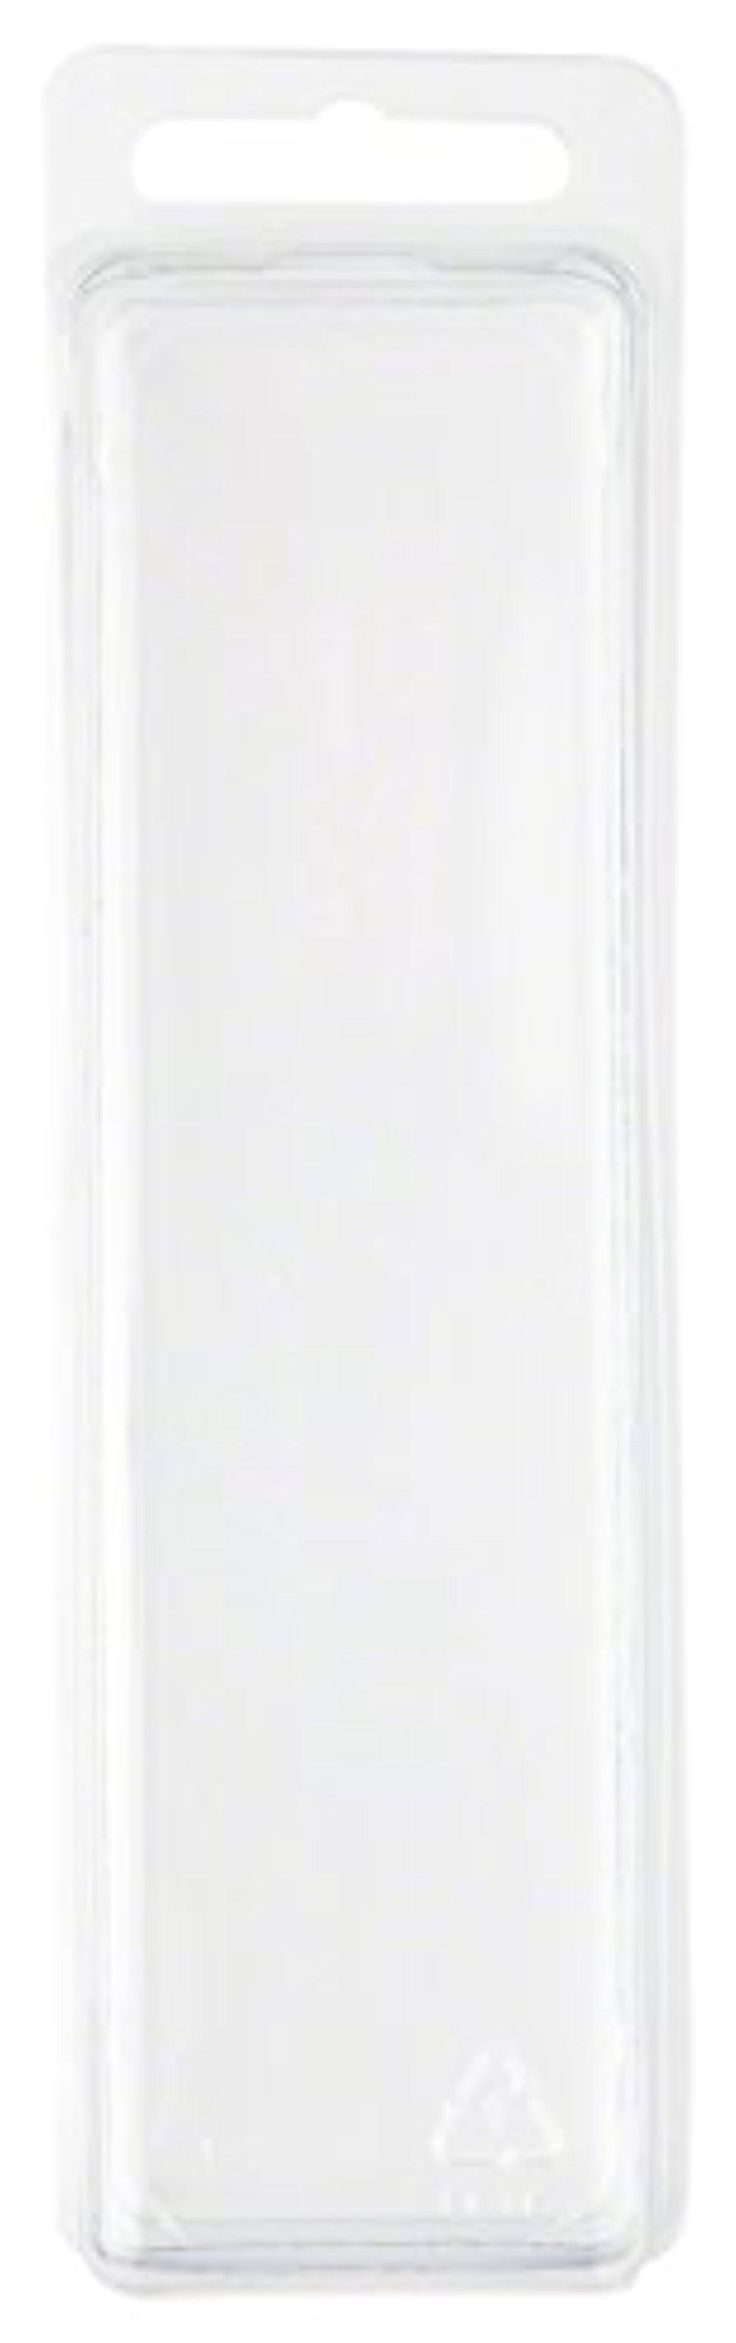 "Clear Plastic Clamshell Package / Storage Container, 5.5"" H x 1.5"" W x 1.25"" D - Brought to you by Avarsha.com"